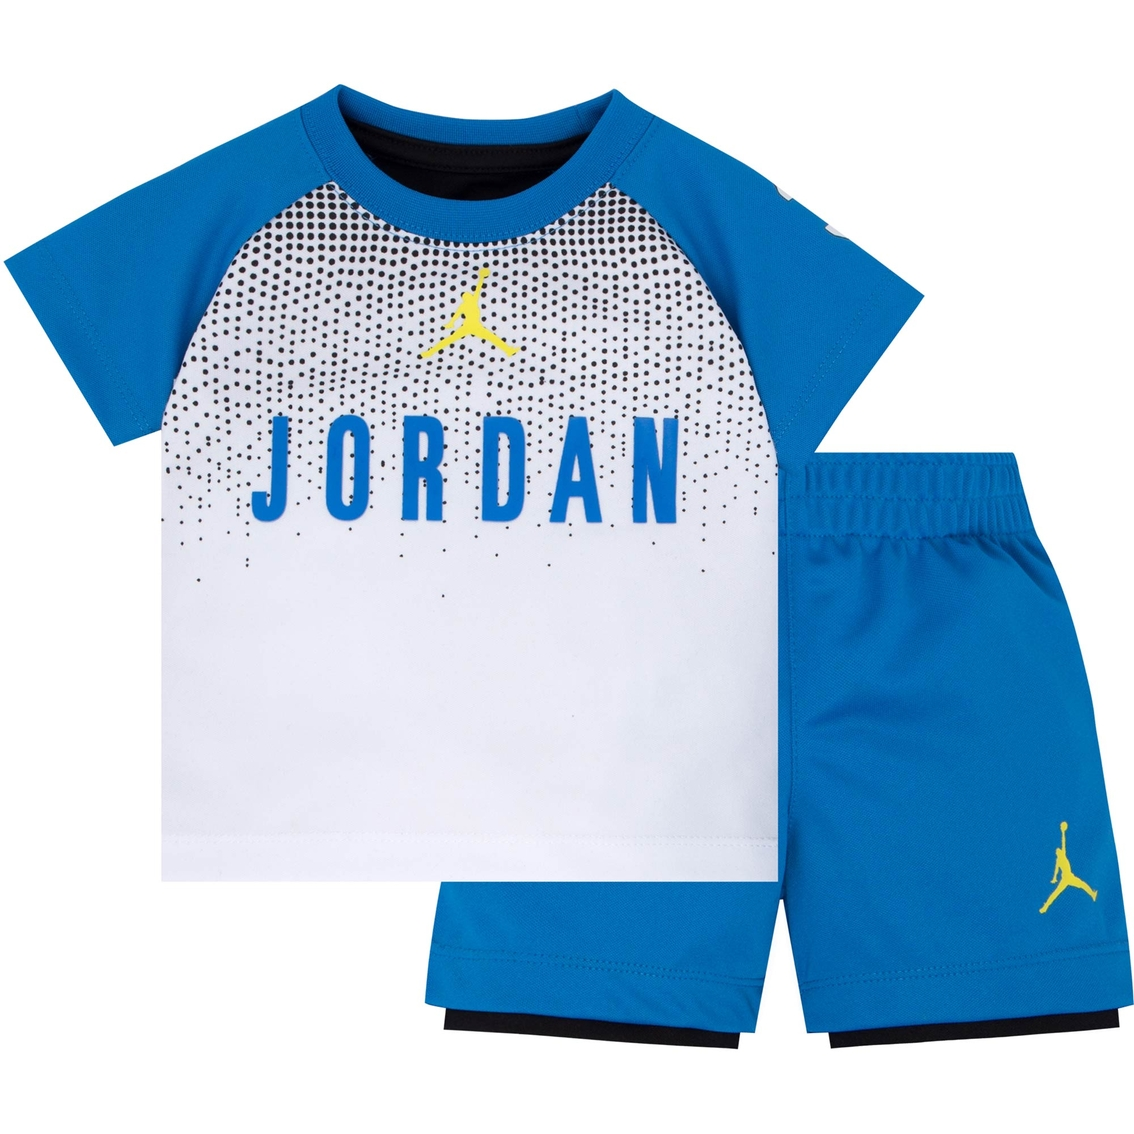 6f982aa01cfe Jordan Toddler Boys 2 Pc. Tricot Tee And Shorts Set